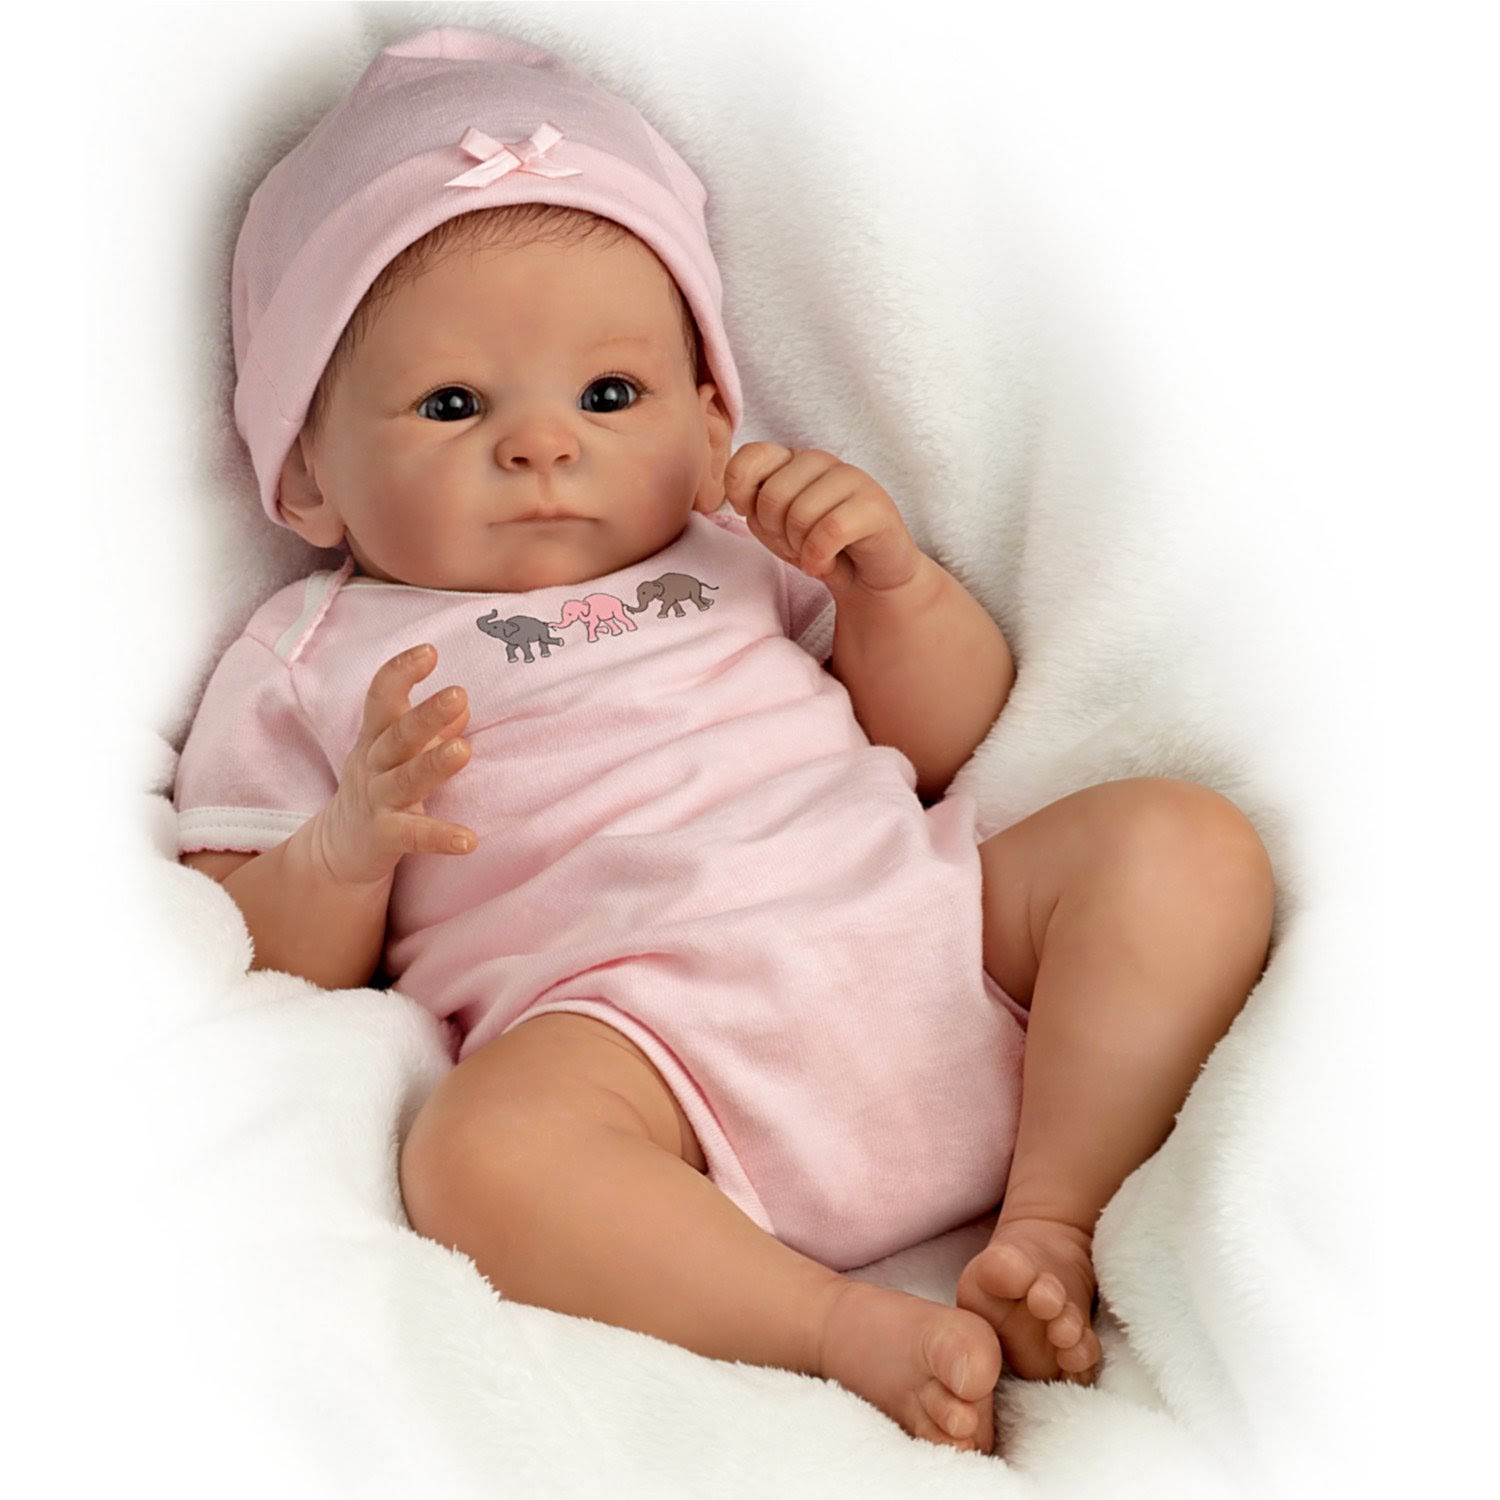 "Little Peanut Baby Doll - 17"" by Ashton Drake - What A Doll - Real Life Like Doll"